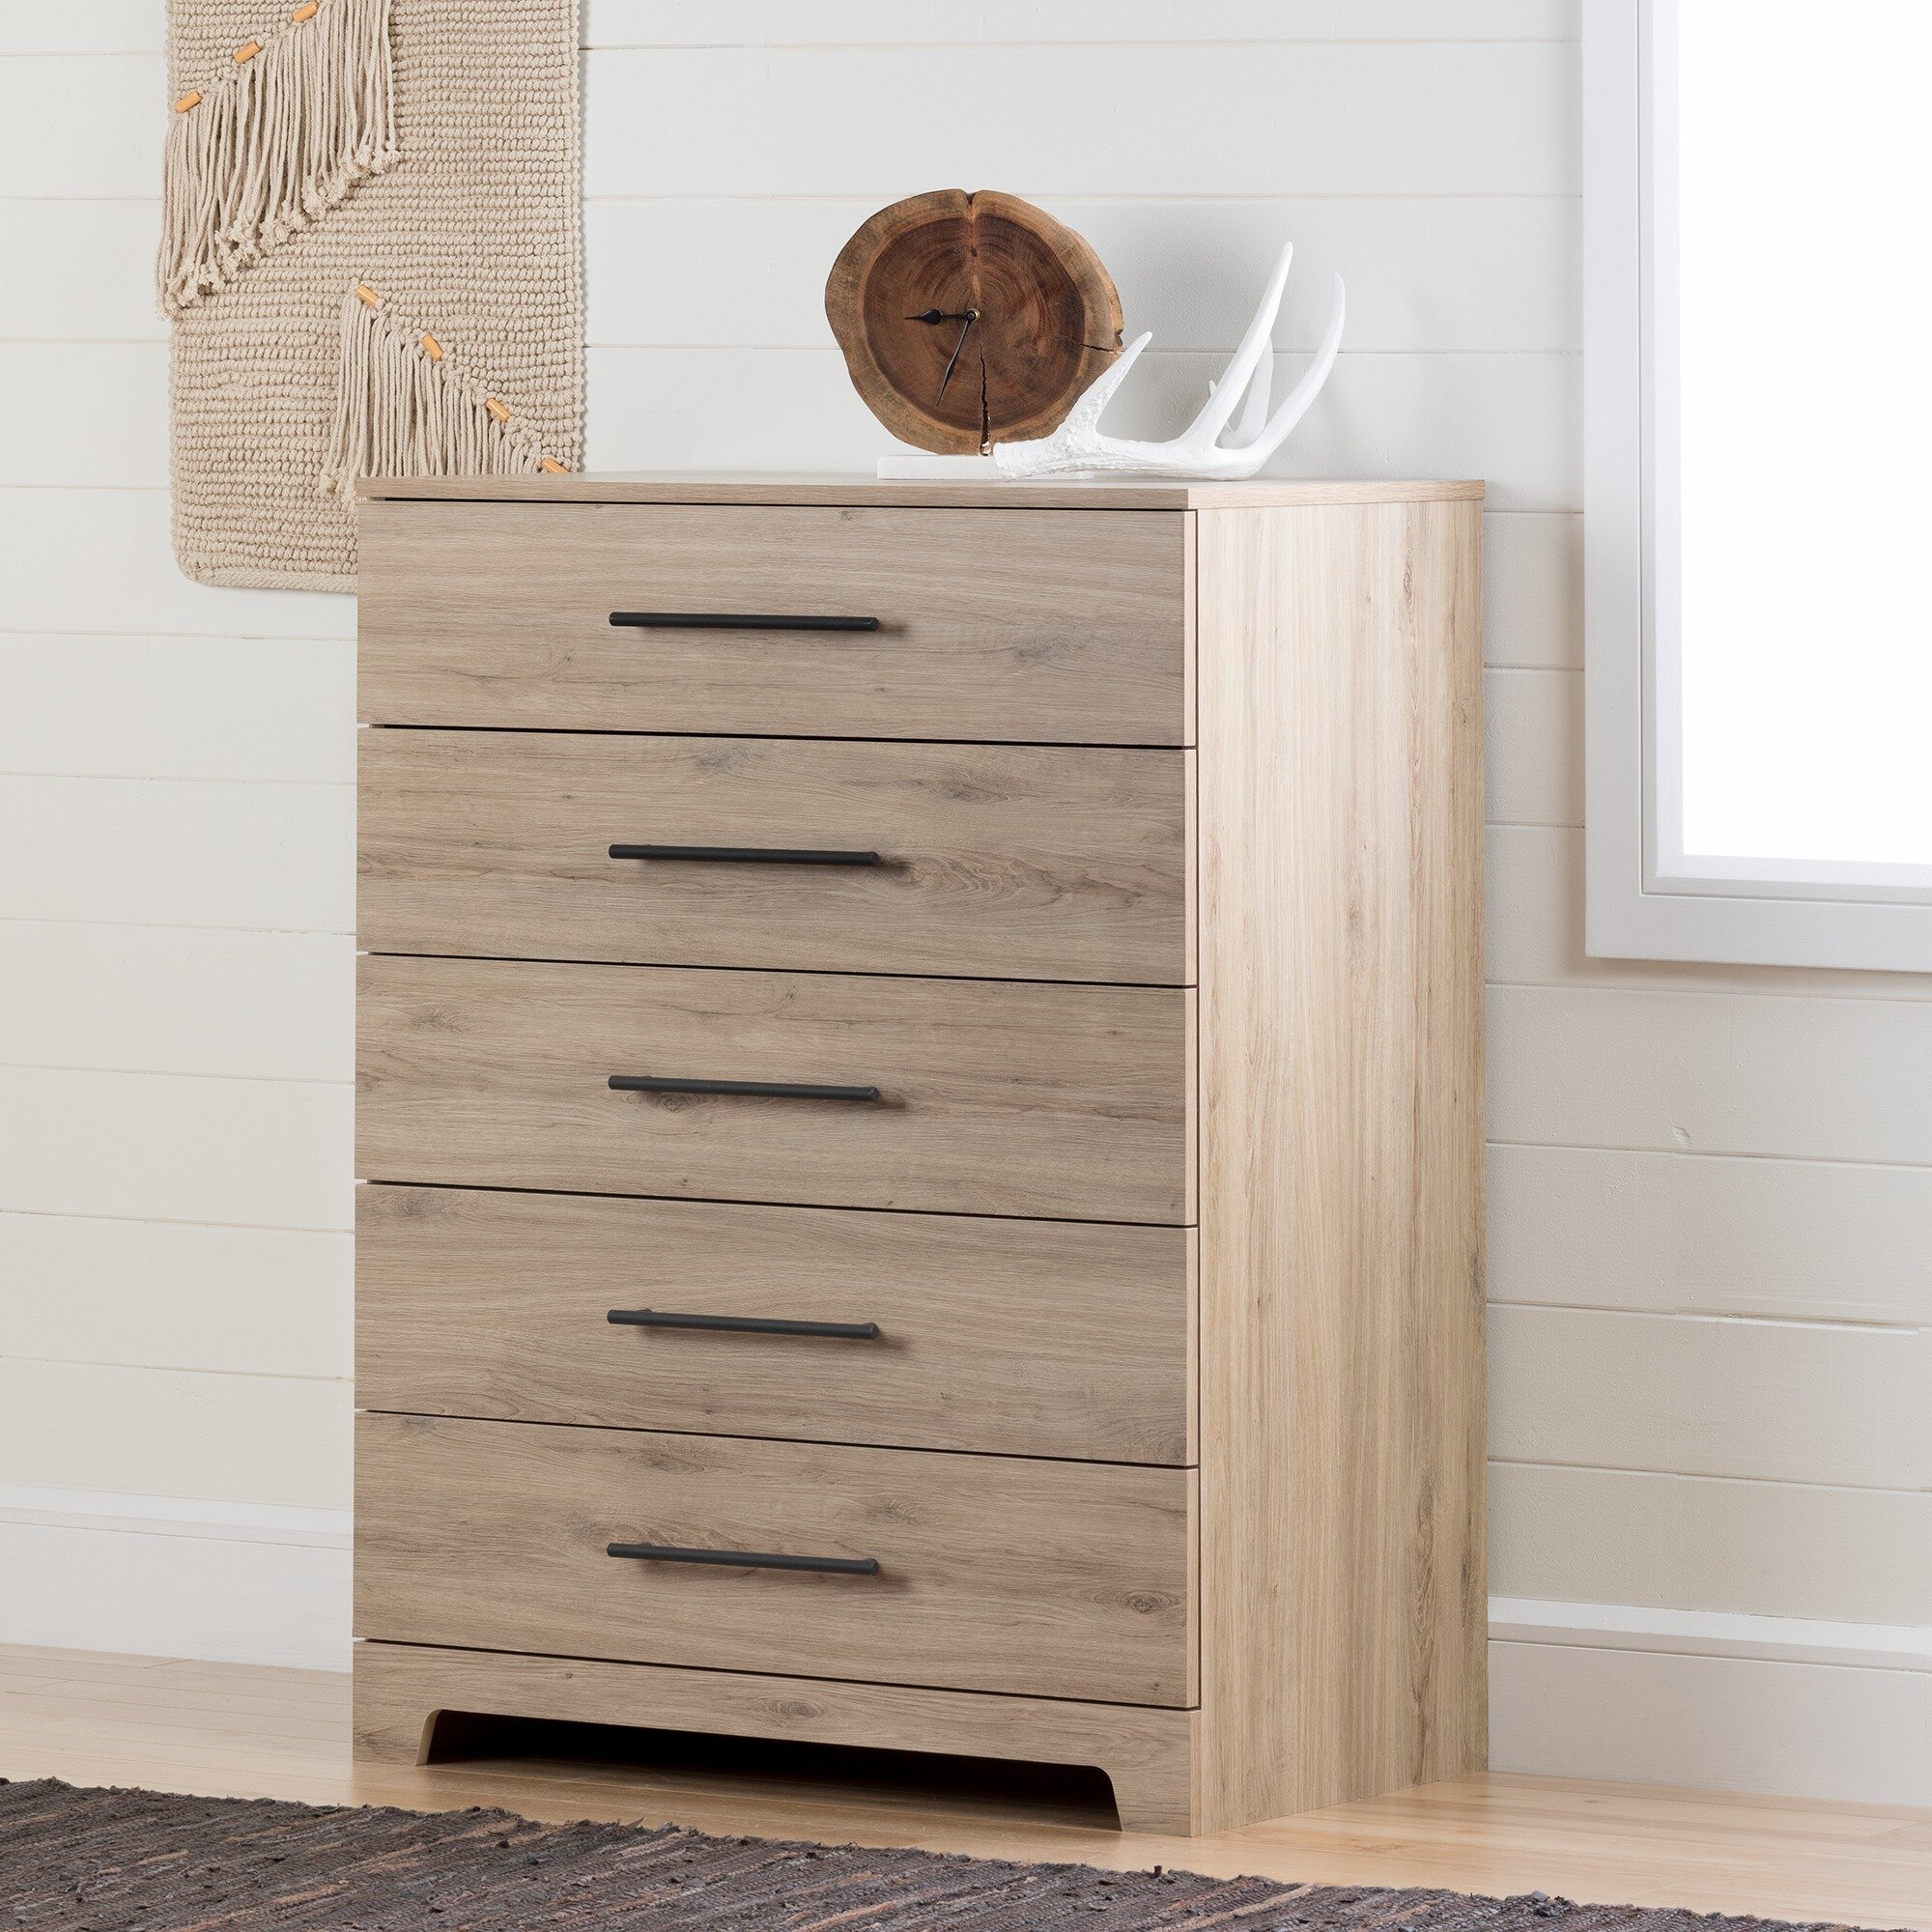 furniture homeware keira oliver wooden drawers cupboard of chest bonas